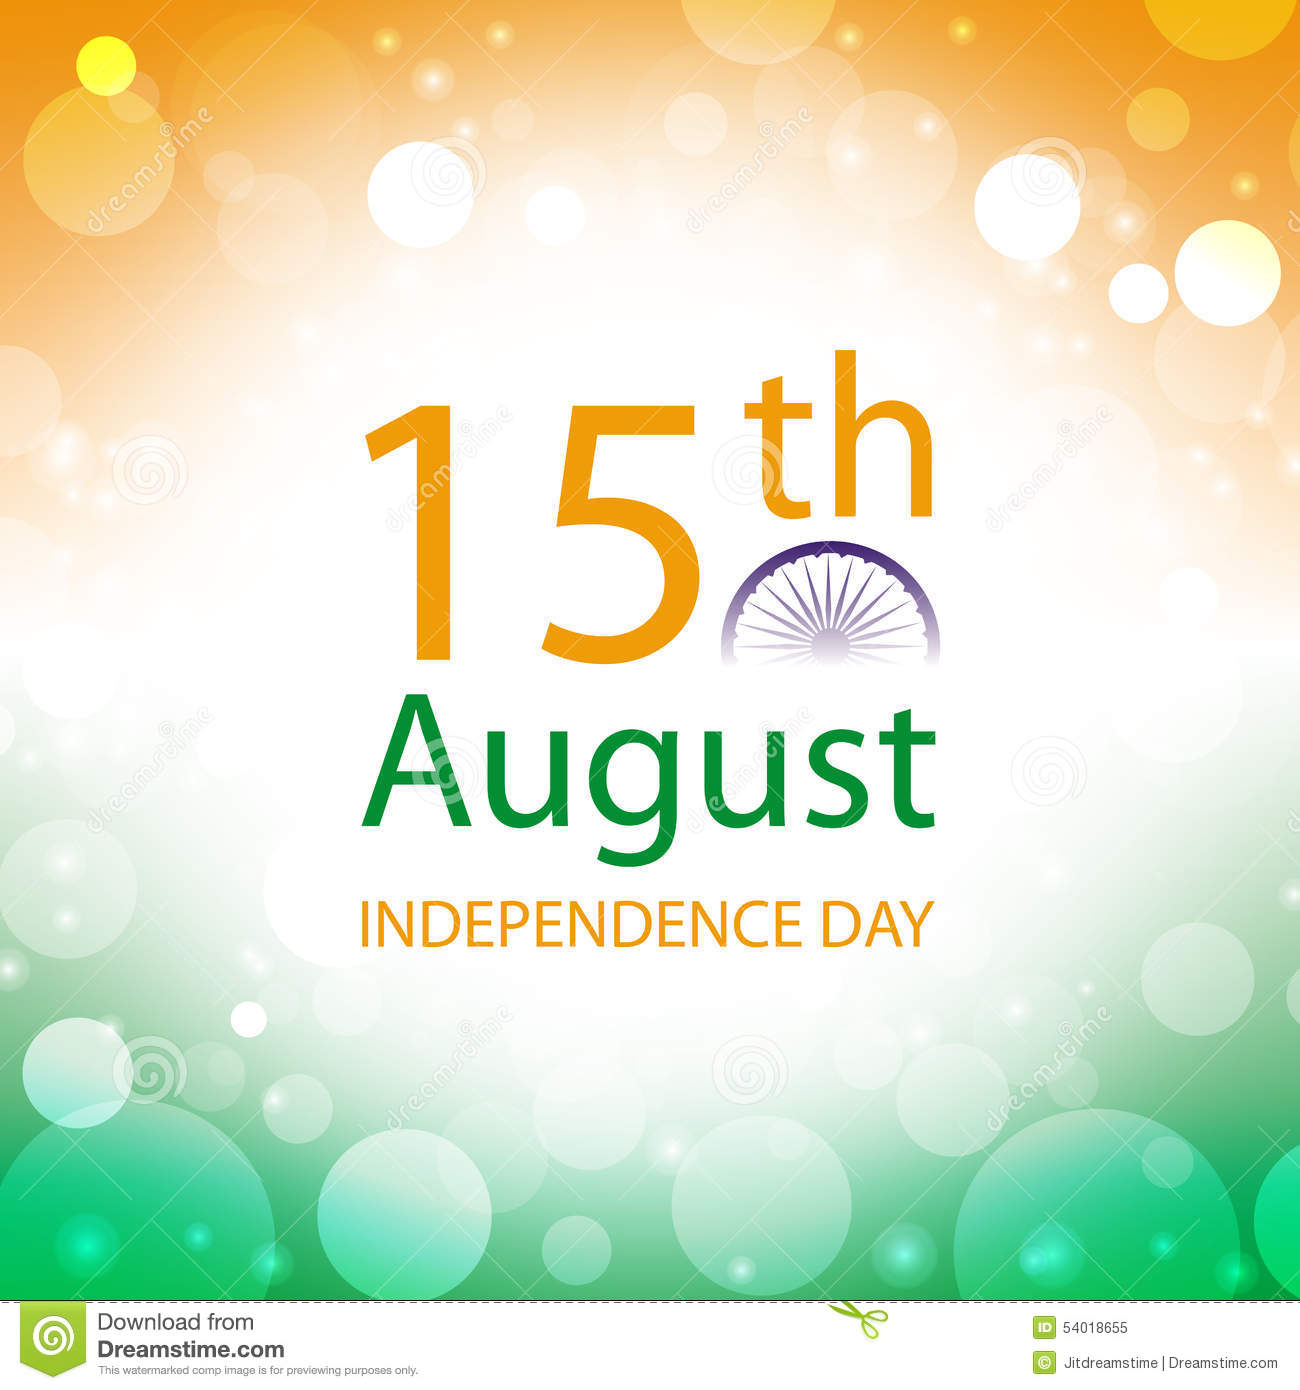 India independence day greeting card stock vector illustration of india independence day greeting card m4hsunfo